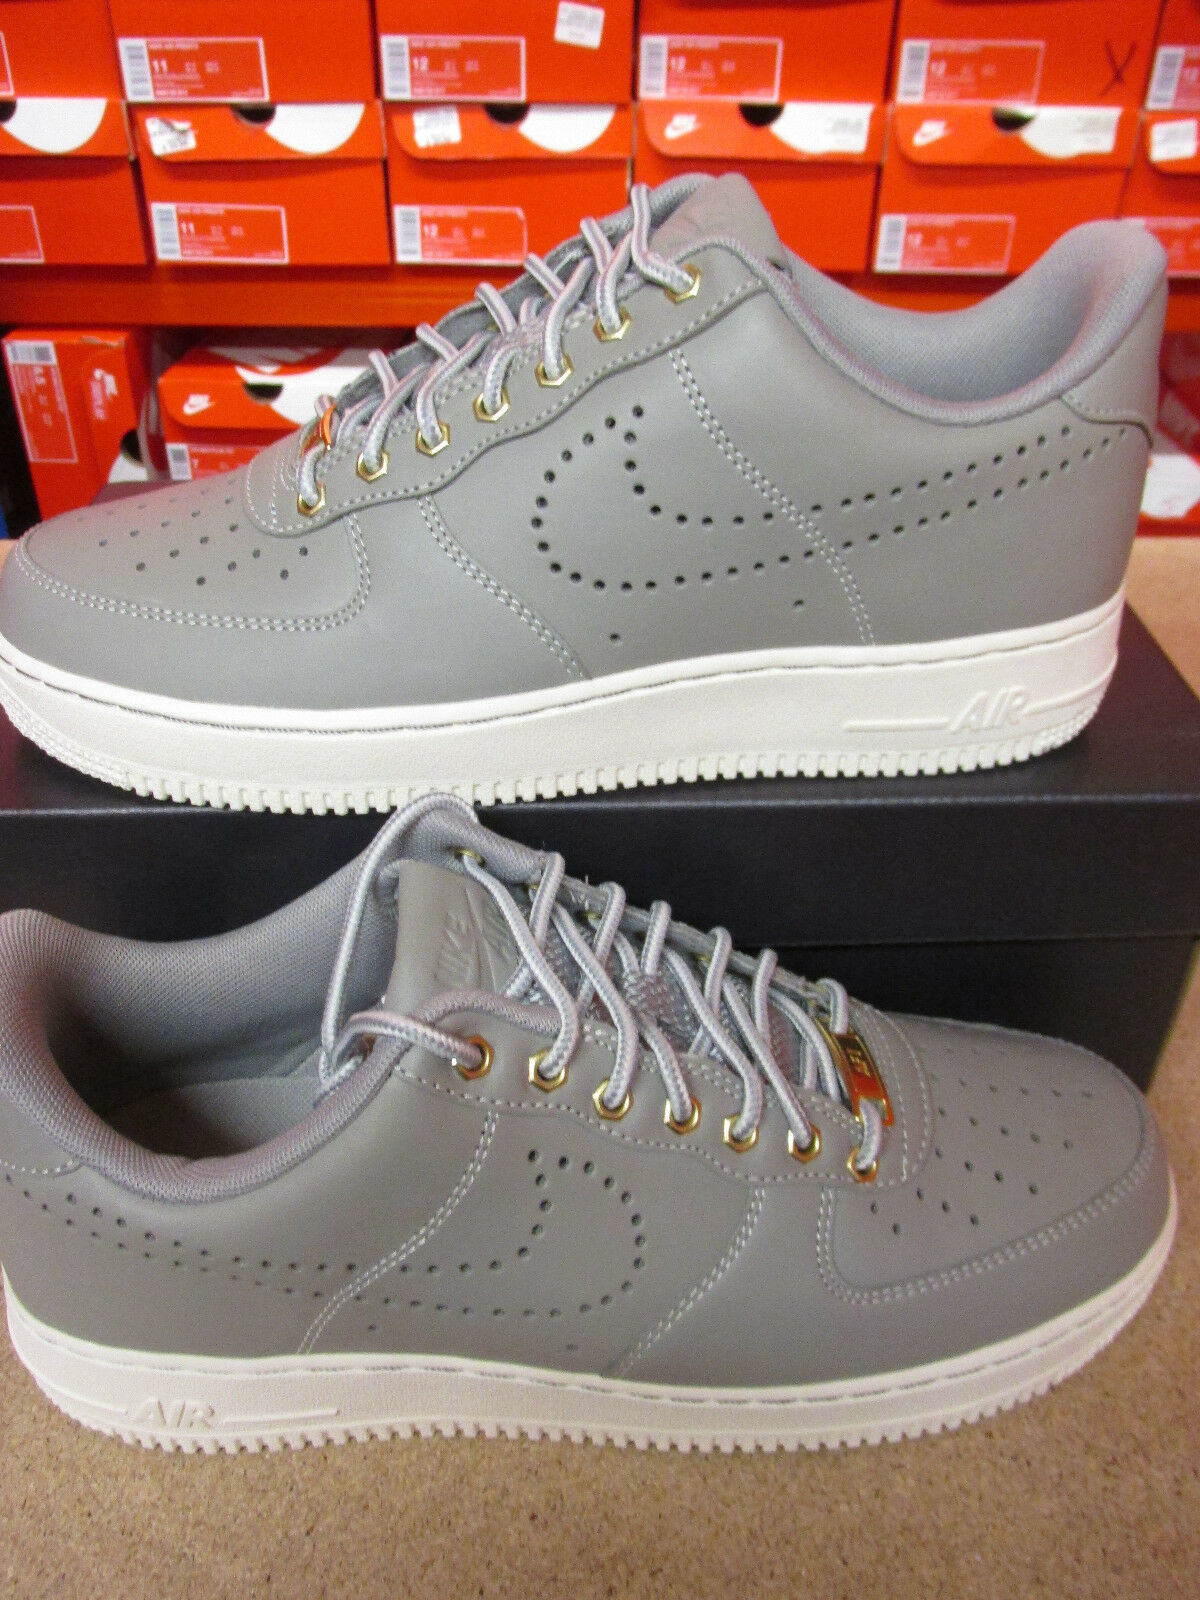 Nike Air Force 1 LV8 WB Mens Trainers 882095 002 Sneakers Shoes